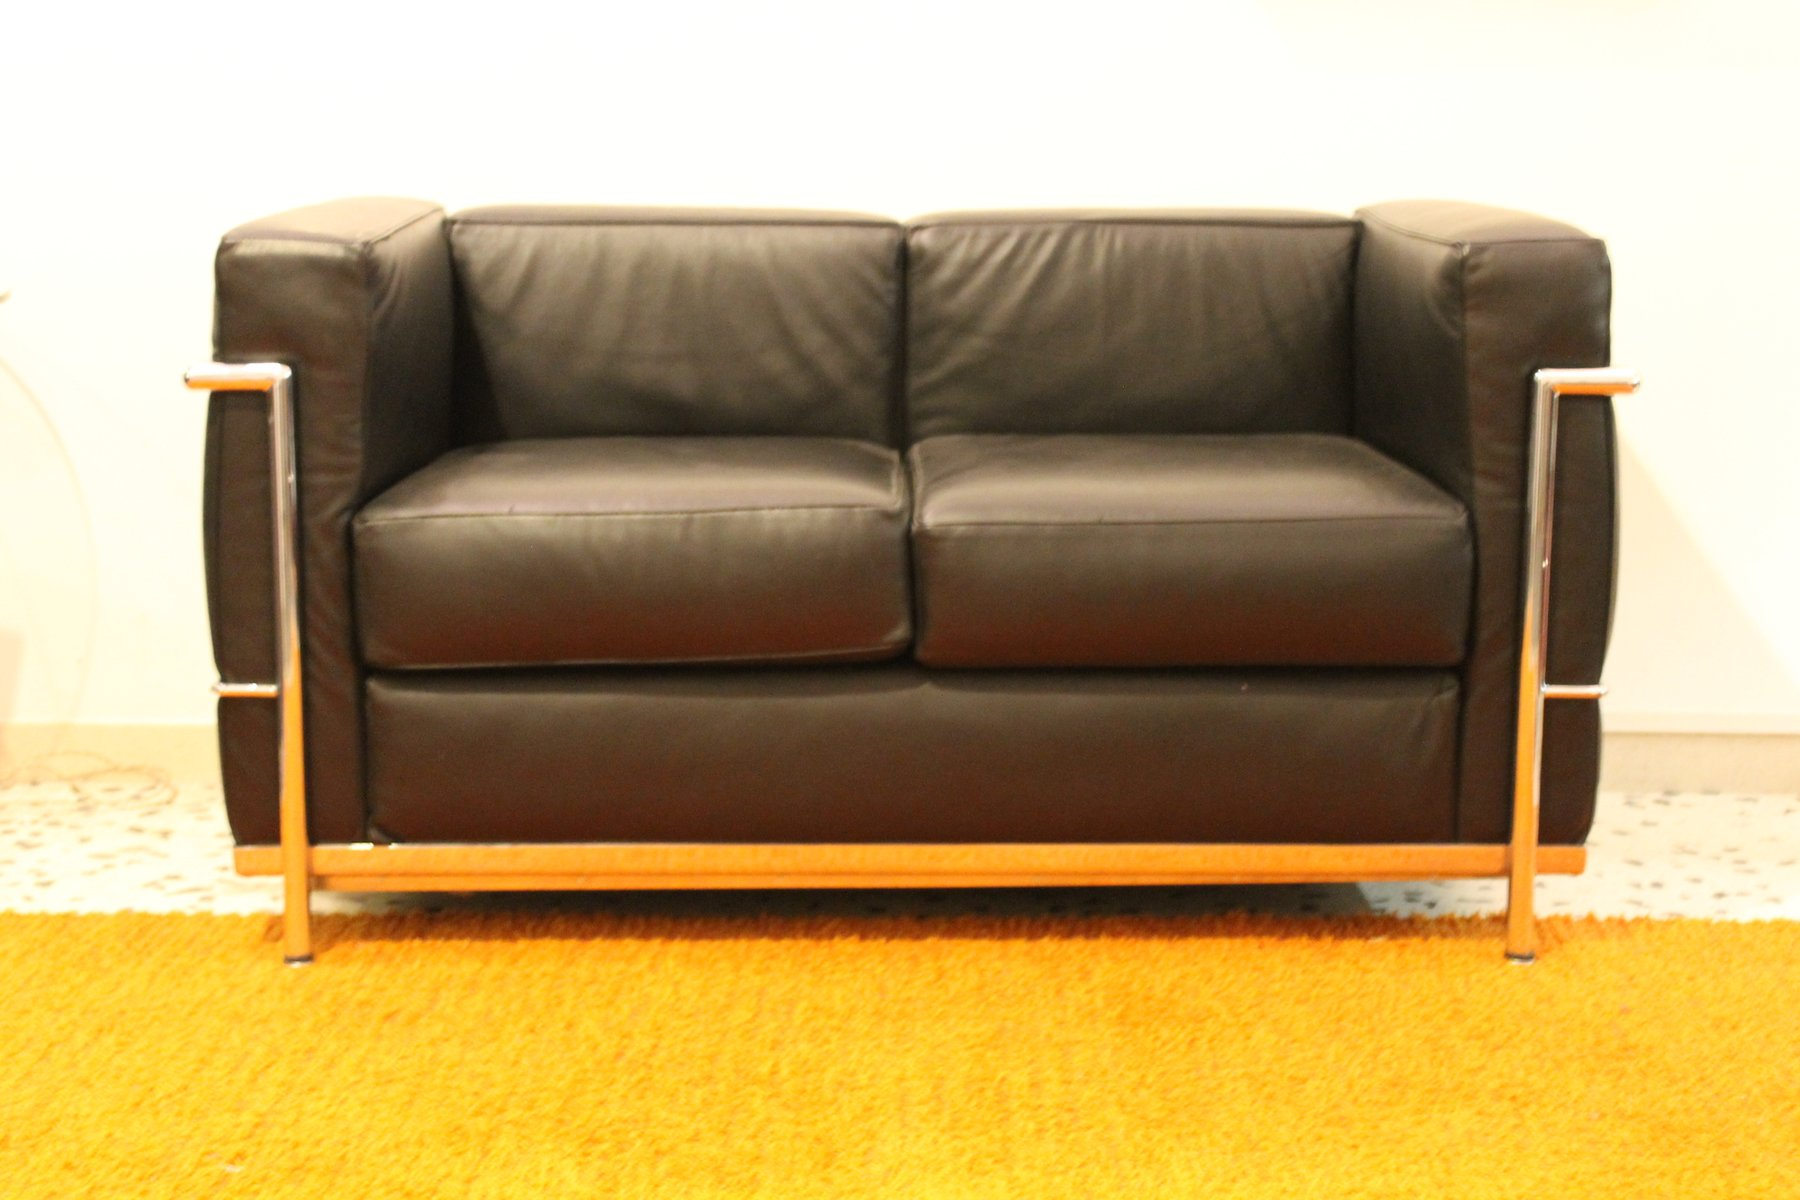 lc2 sofa by le corbusier for alivar 1989 for sale at pamono. Black Bedroom Furniture Sets. Home Design Ideas